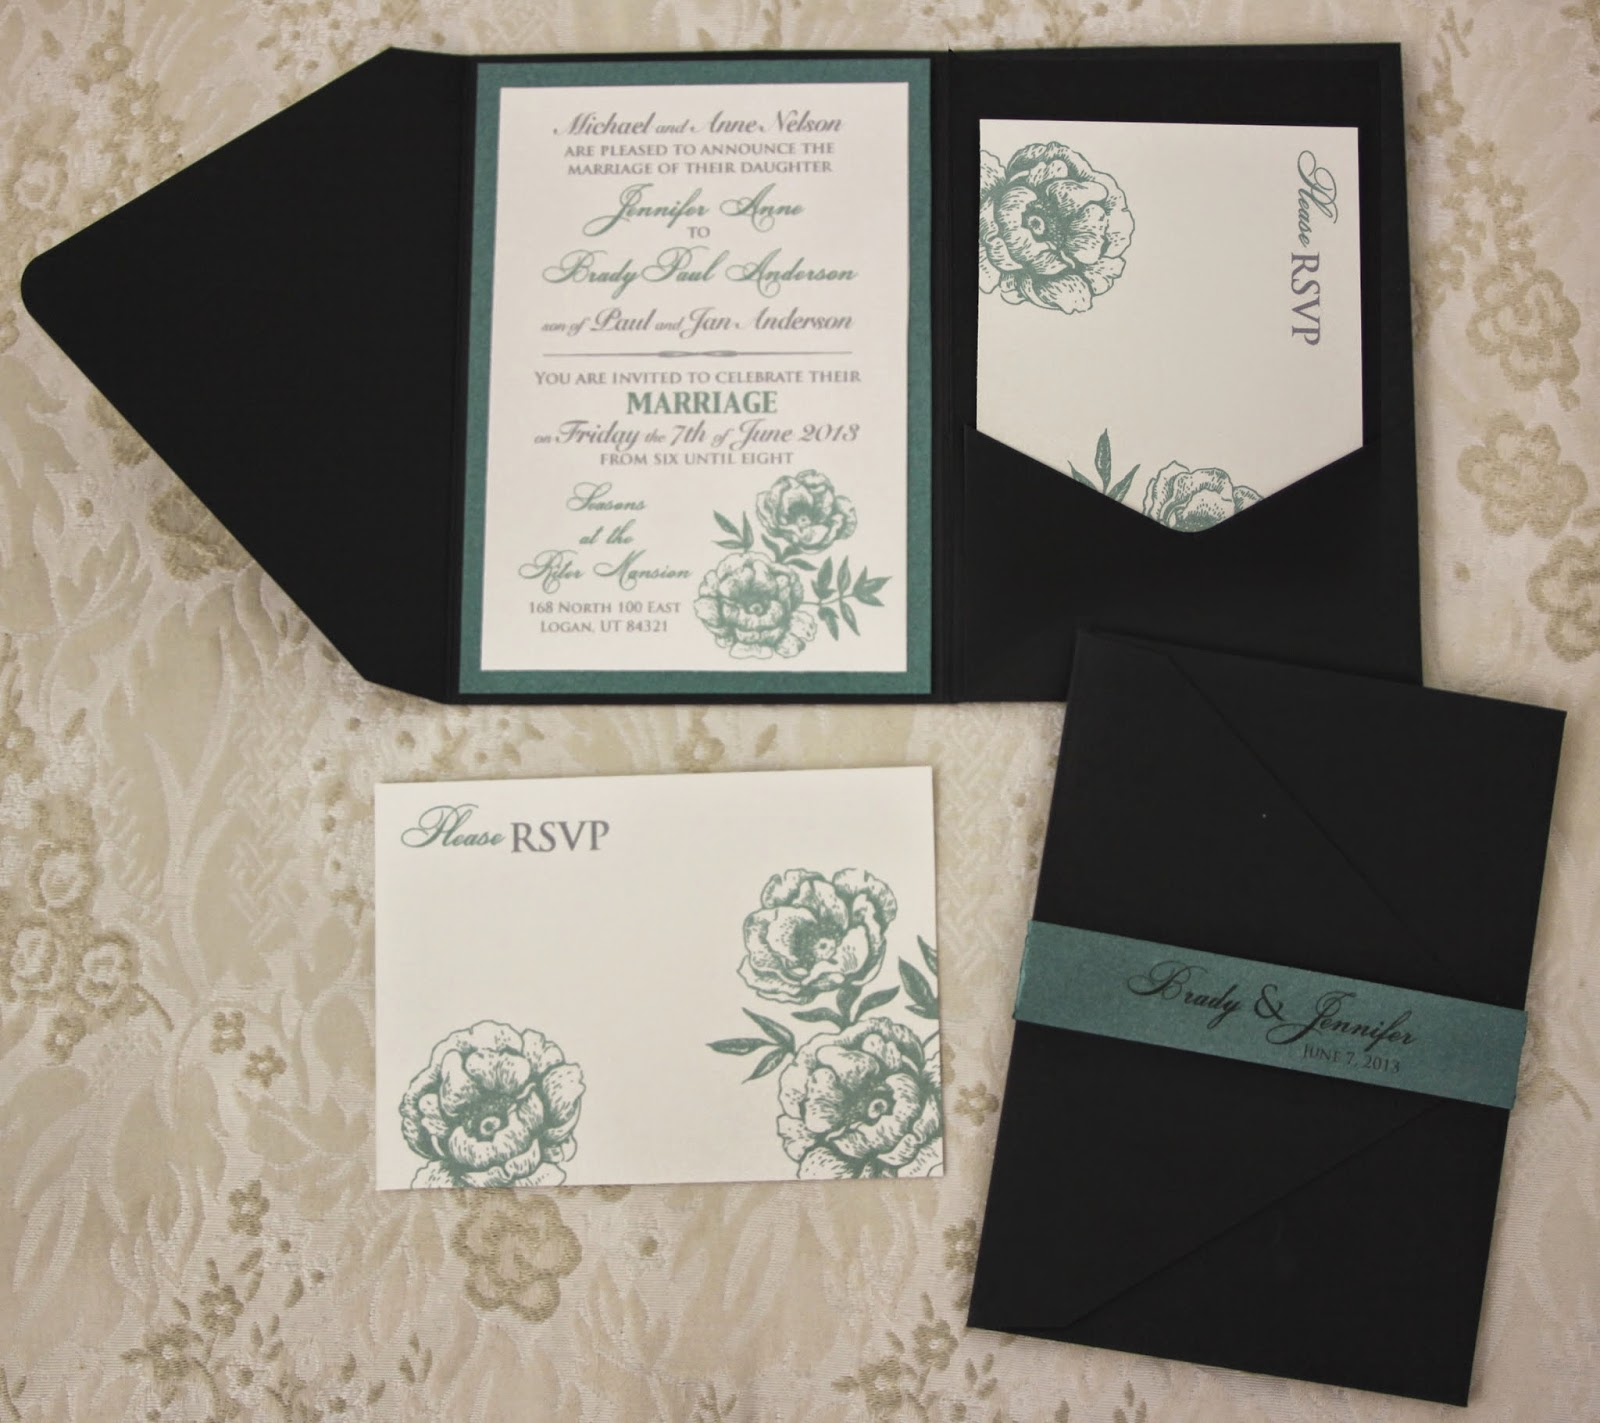 Karas koncepts graphic design custom wedding invitations here is a sneak peak of the pocket wedding invitations that will be soon on the blog monicamarmolfo Image collections